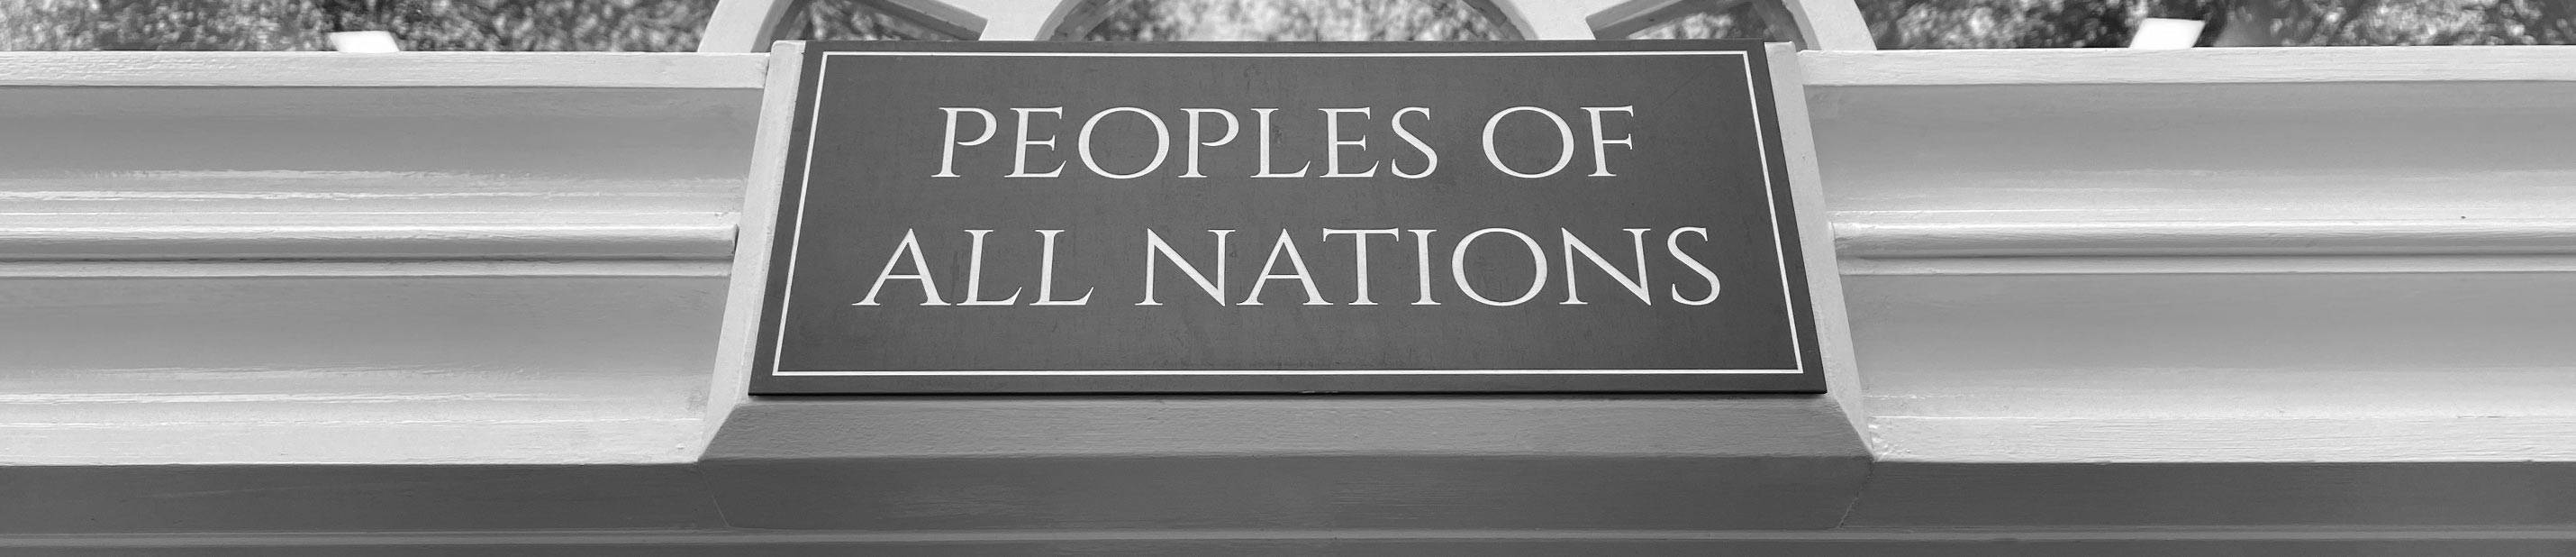 Peoples of All Nations Store Plaque